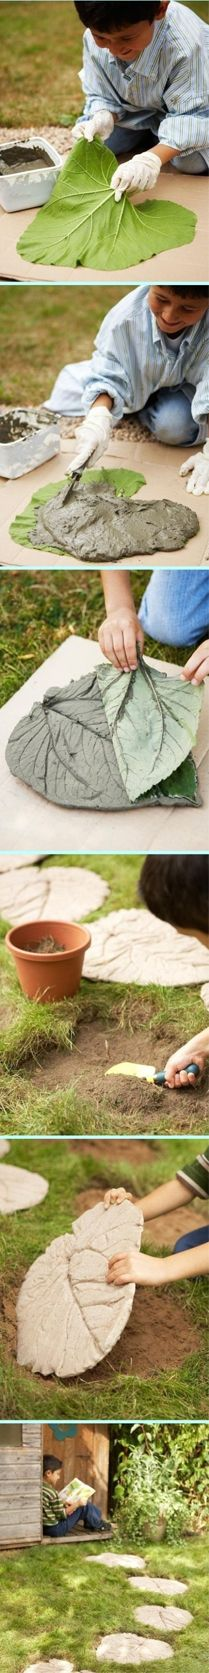 Create these leaf stepping stones with your little ones! http://www.iamtrend.com/upload/pictures/2012/12/15/pic_real/17680/89349_3_1426143376_15122012112106.jpg